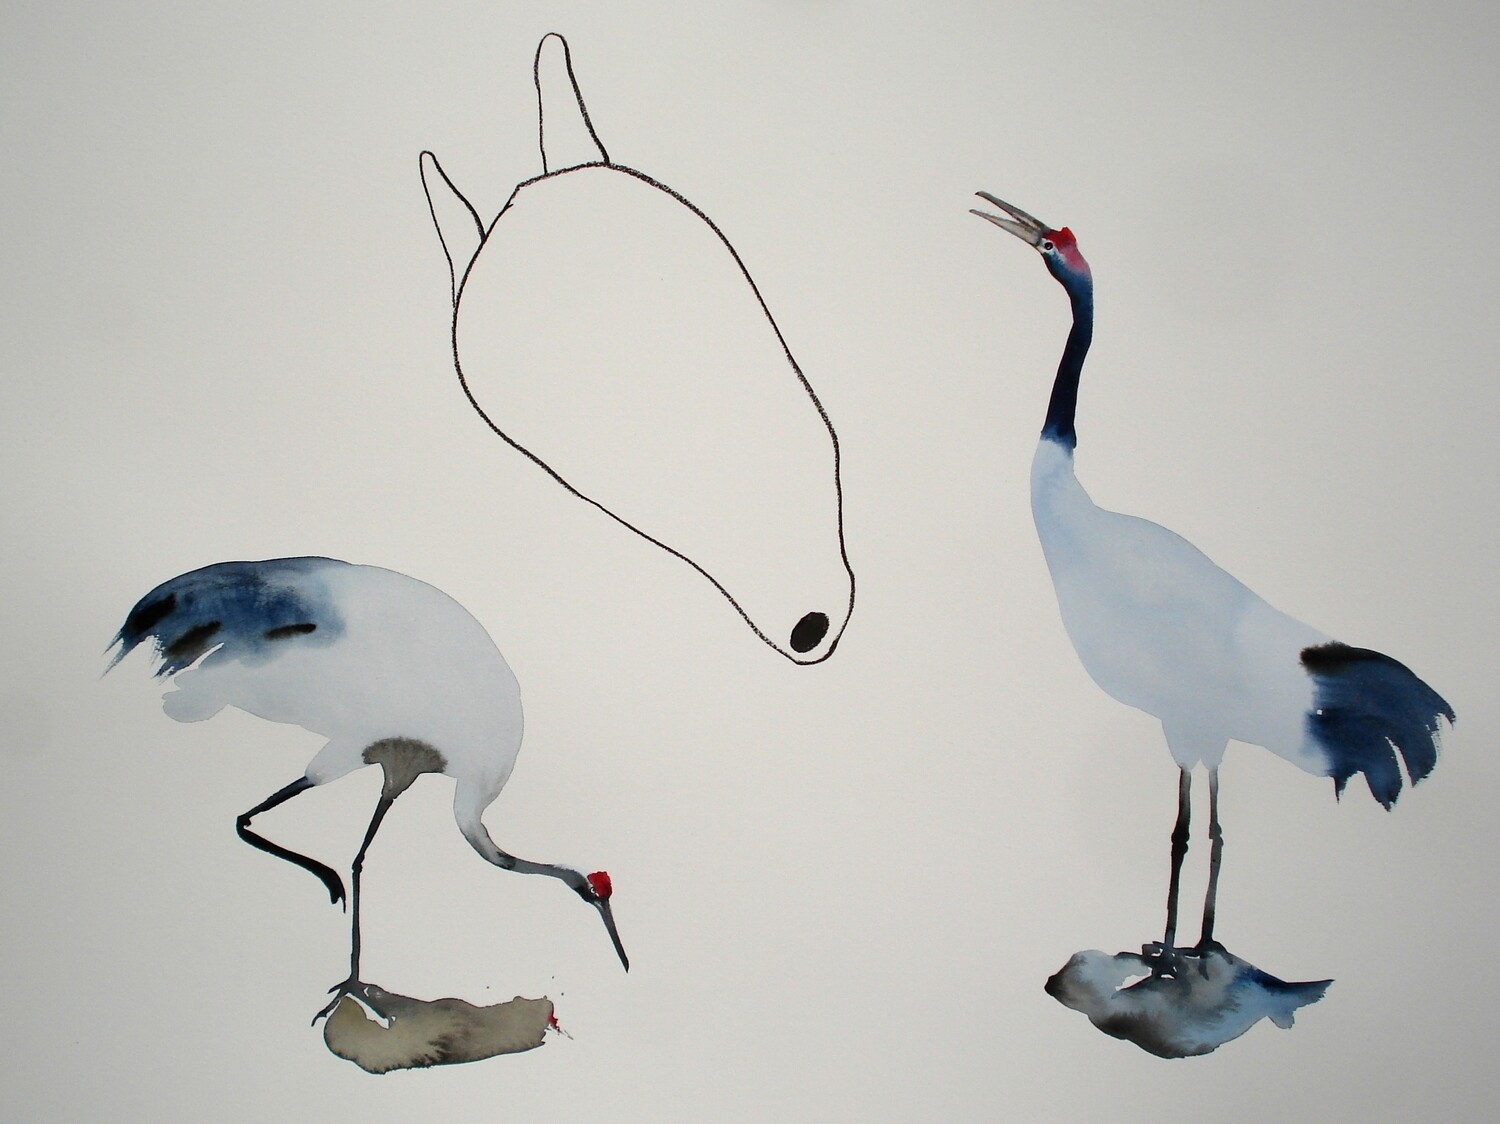 two cranes and an incarnate